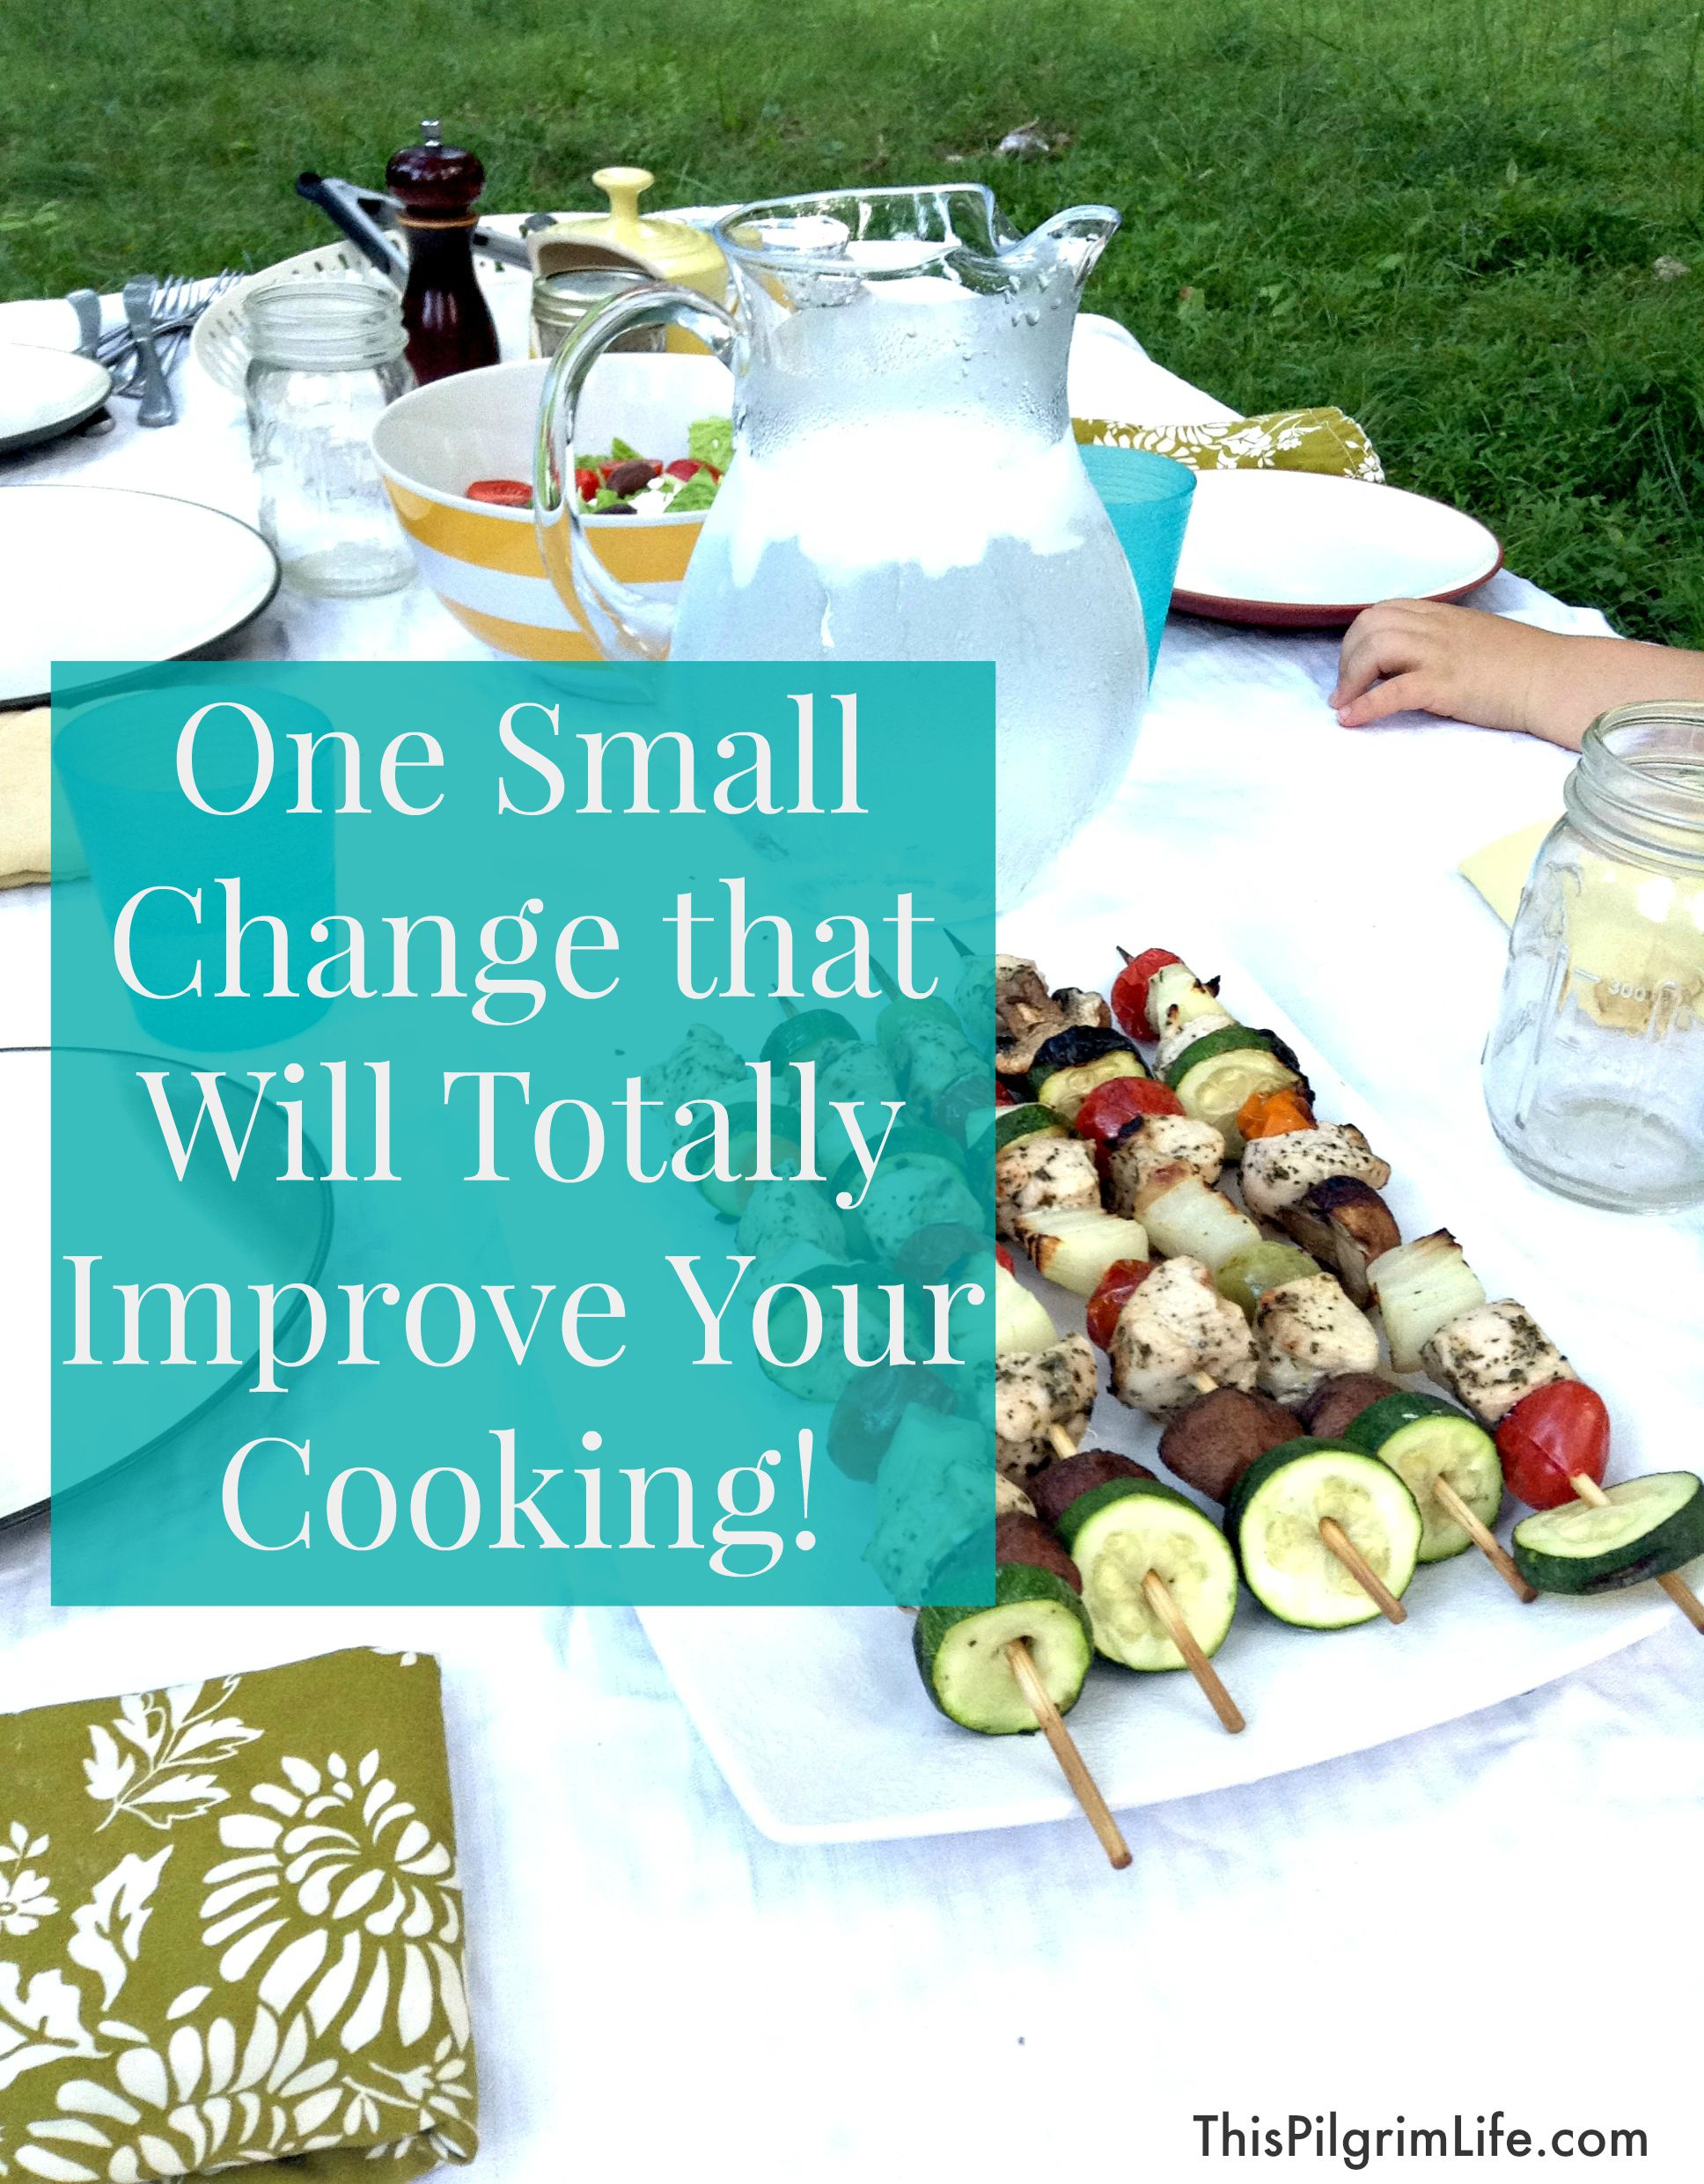 One Small Change that Will Totally Improve Your Cooking!